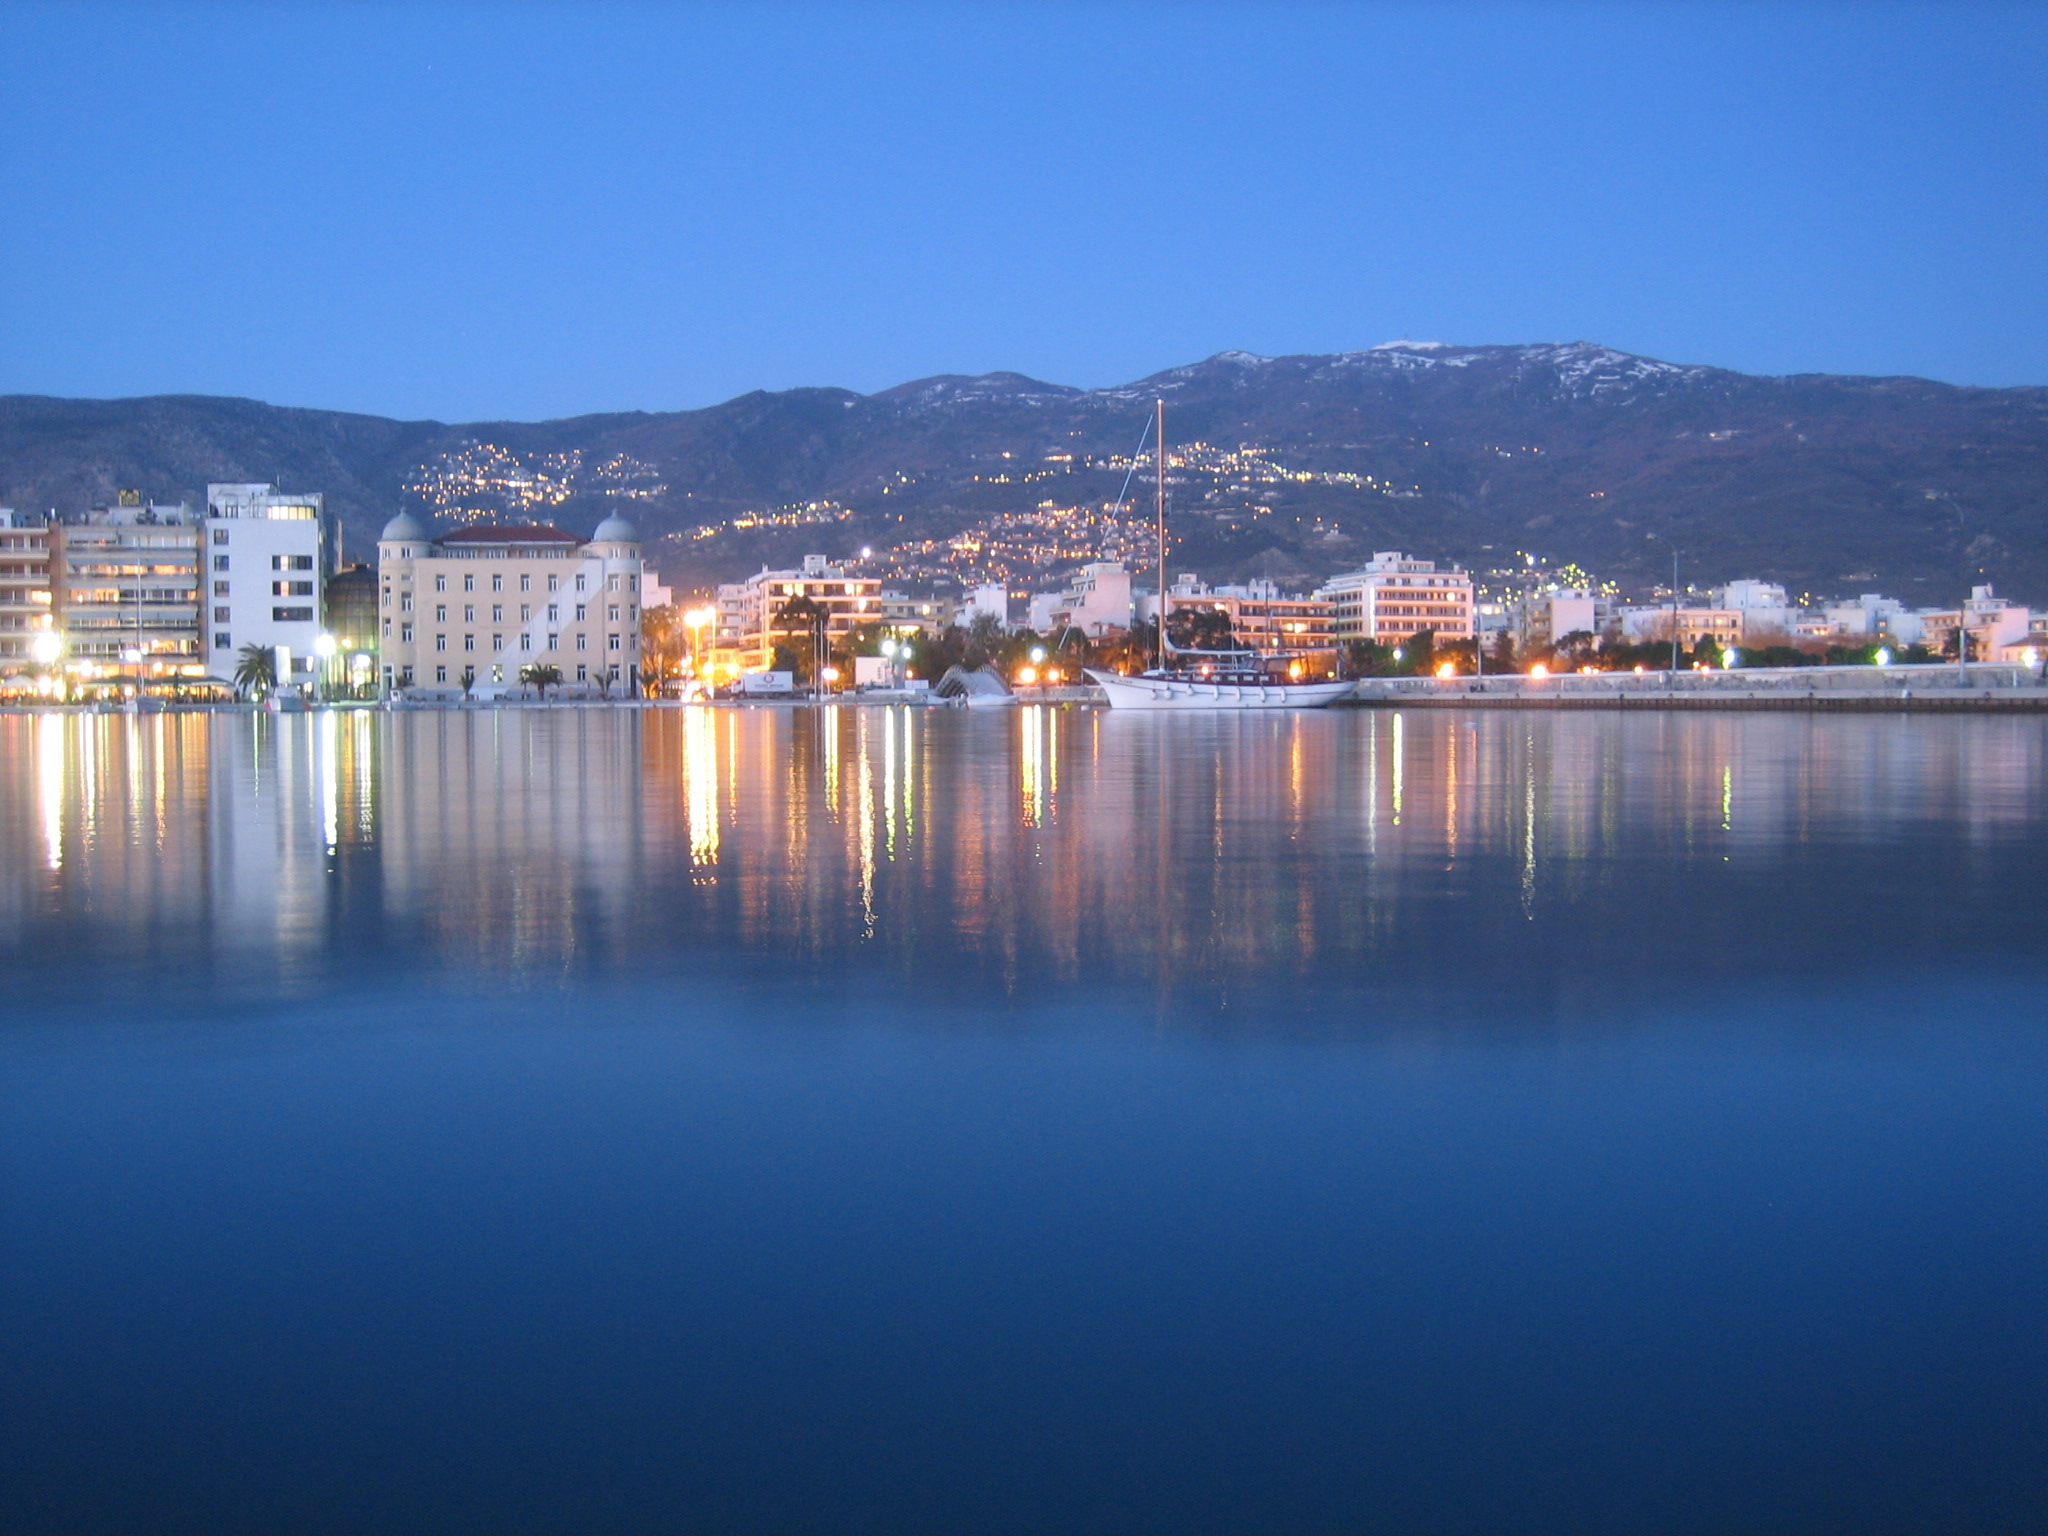 Depiction of Volos